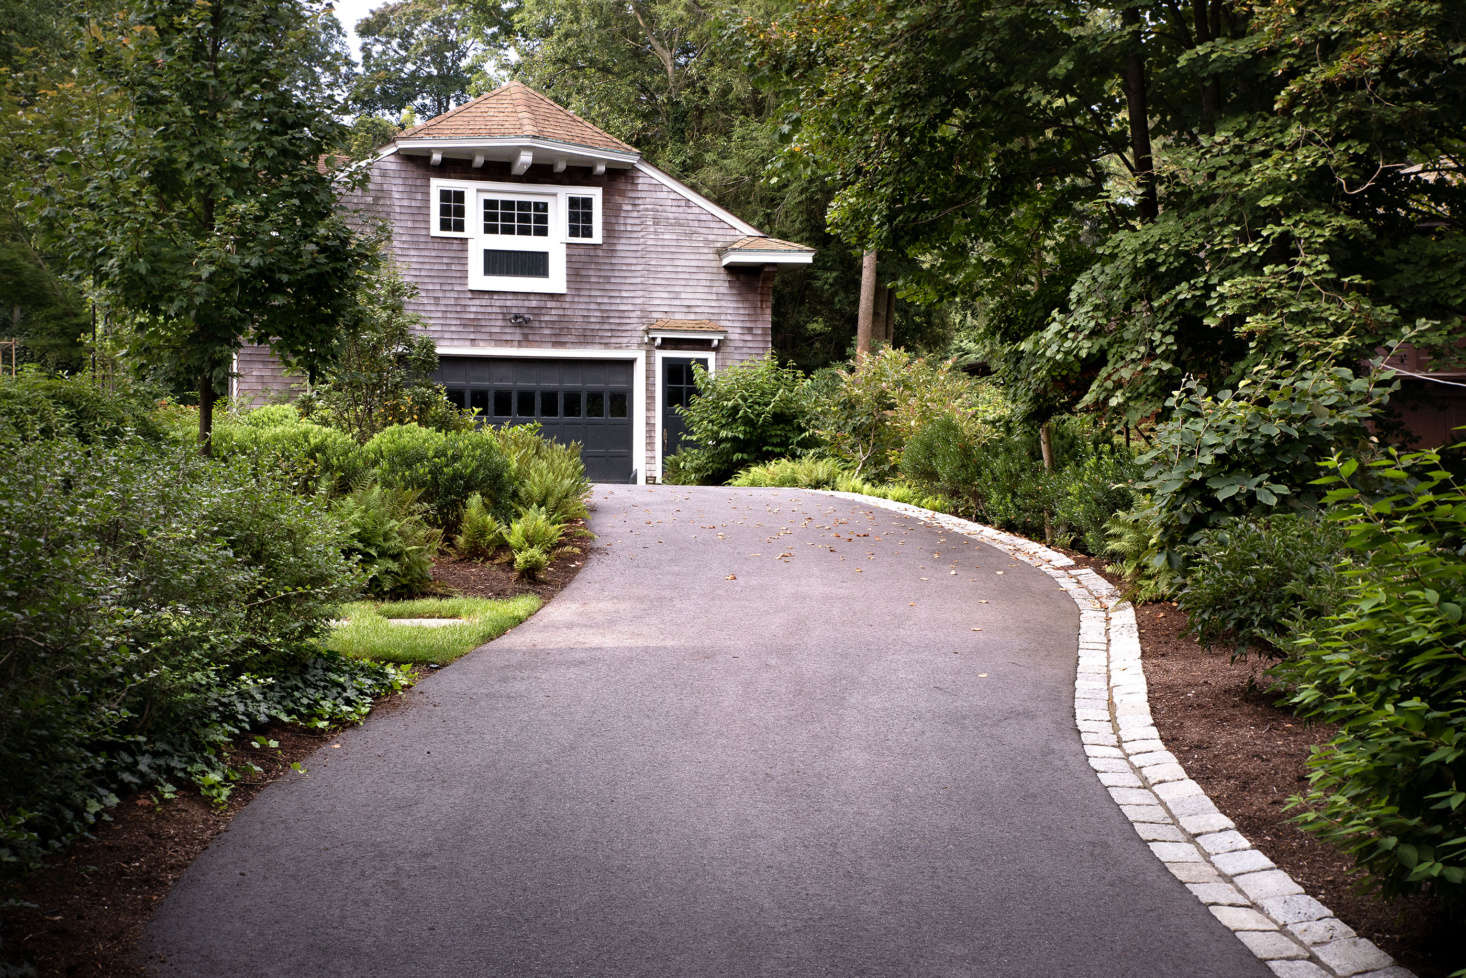 The driveway, which continues past the house to the historic garage, was completely regraded. A new cobblestone edge adds a historically inspired detail, and also channels storm water to prevent the site from flooding.